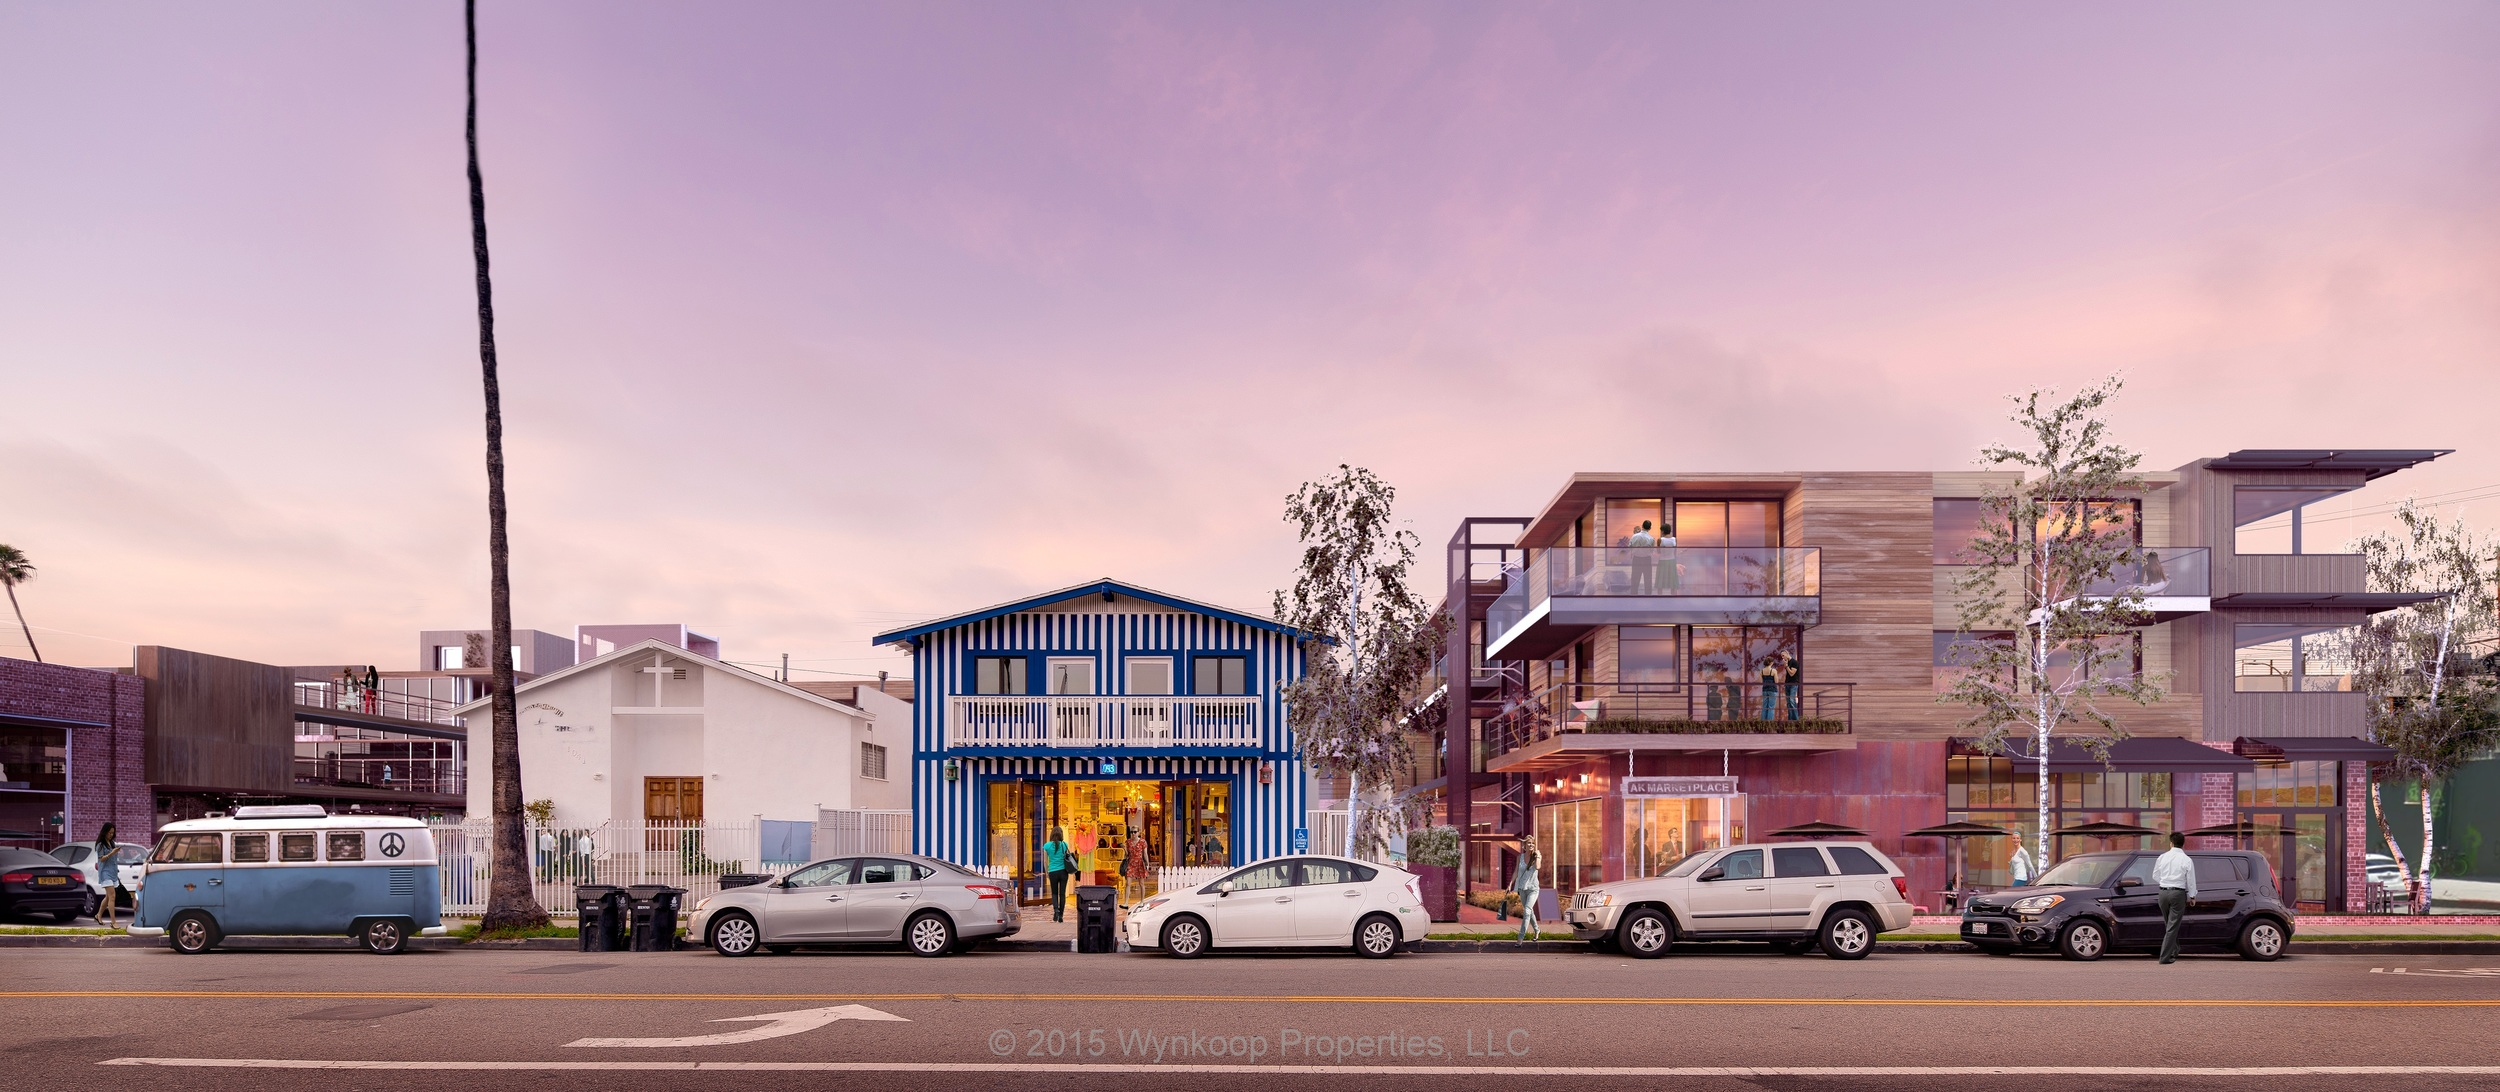 Abbot Kinney Street View – South